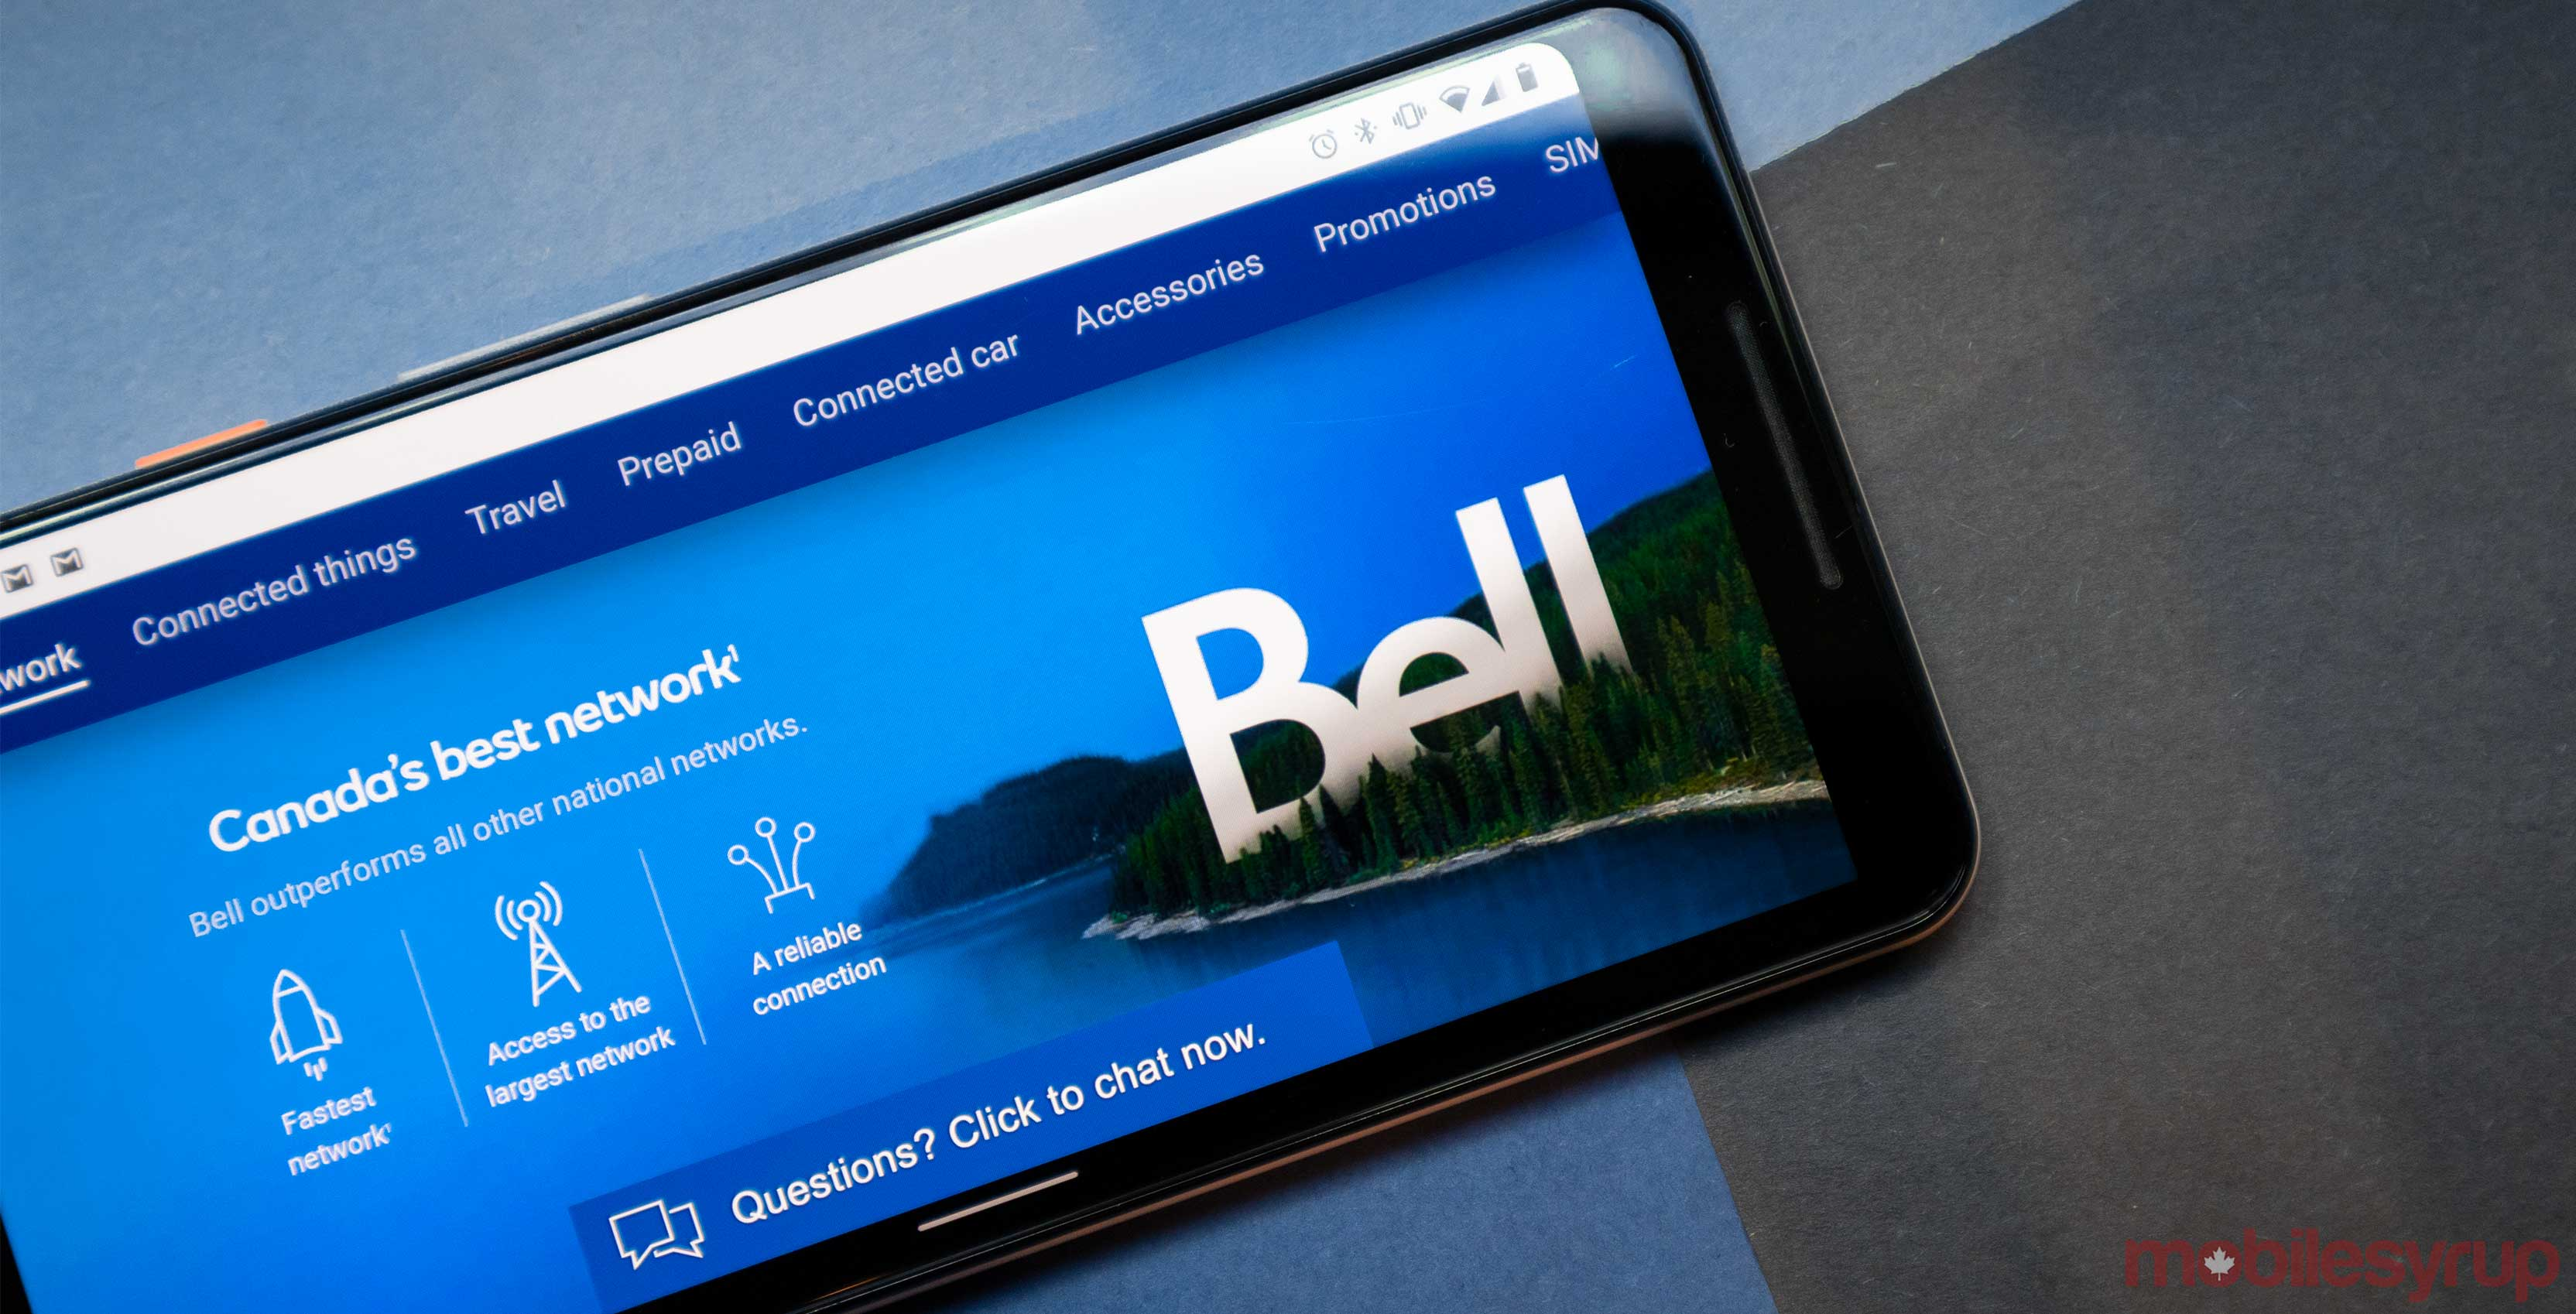 Some Bell users reportedly getting 5GB of free data for a loyalty offer